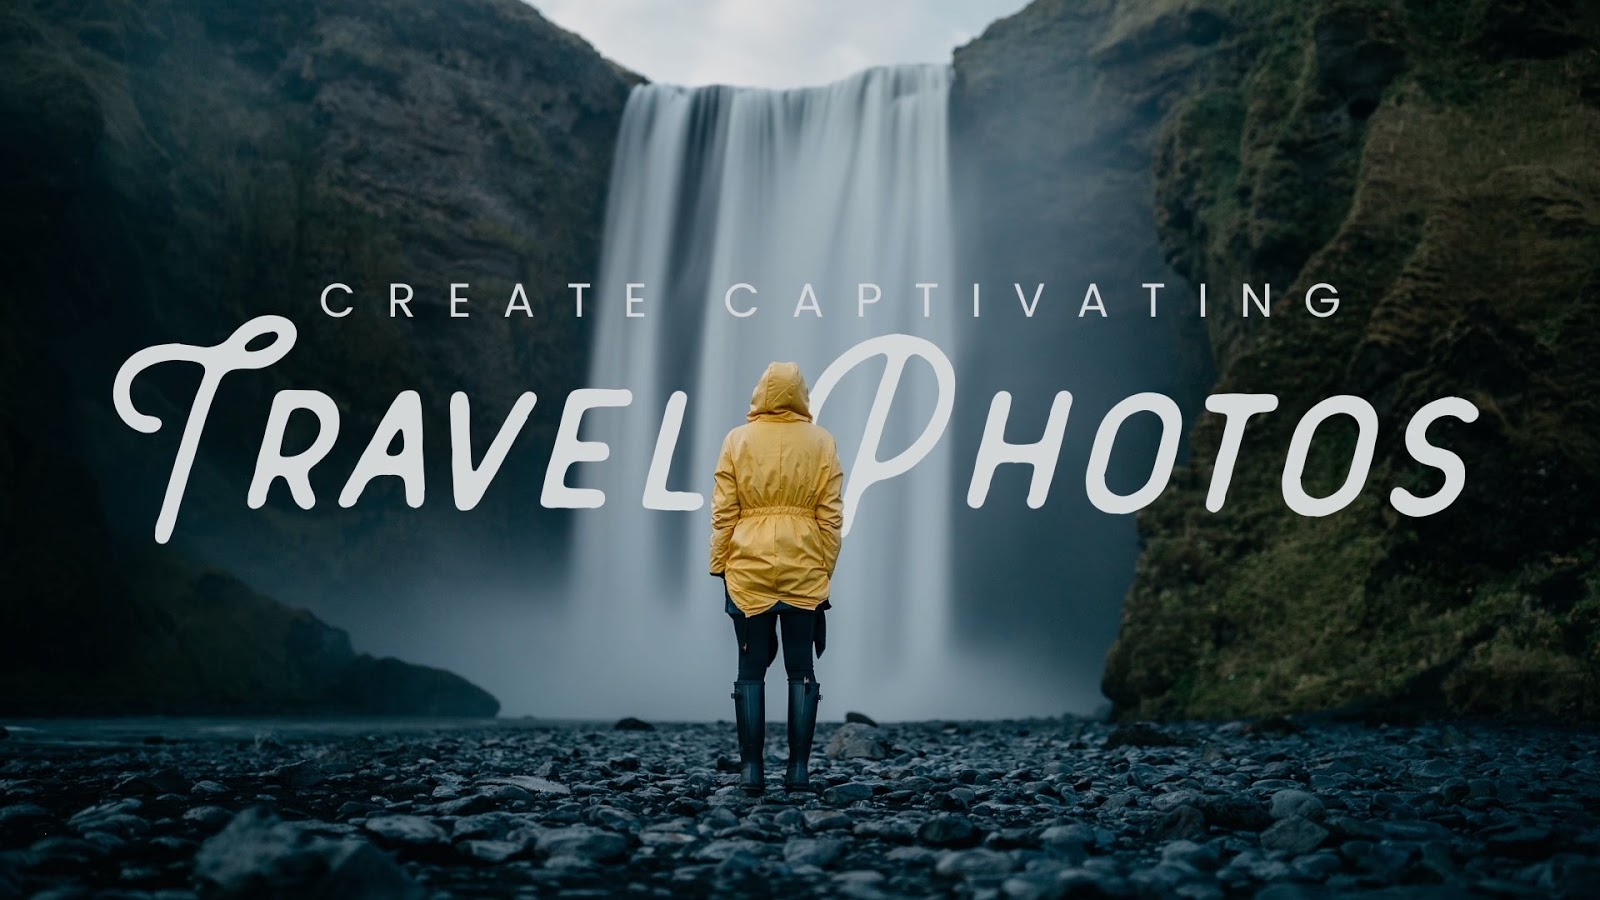 Create Captivating Travel Photos like Chris Burkard